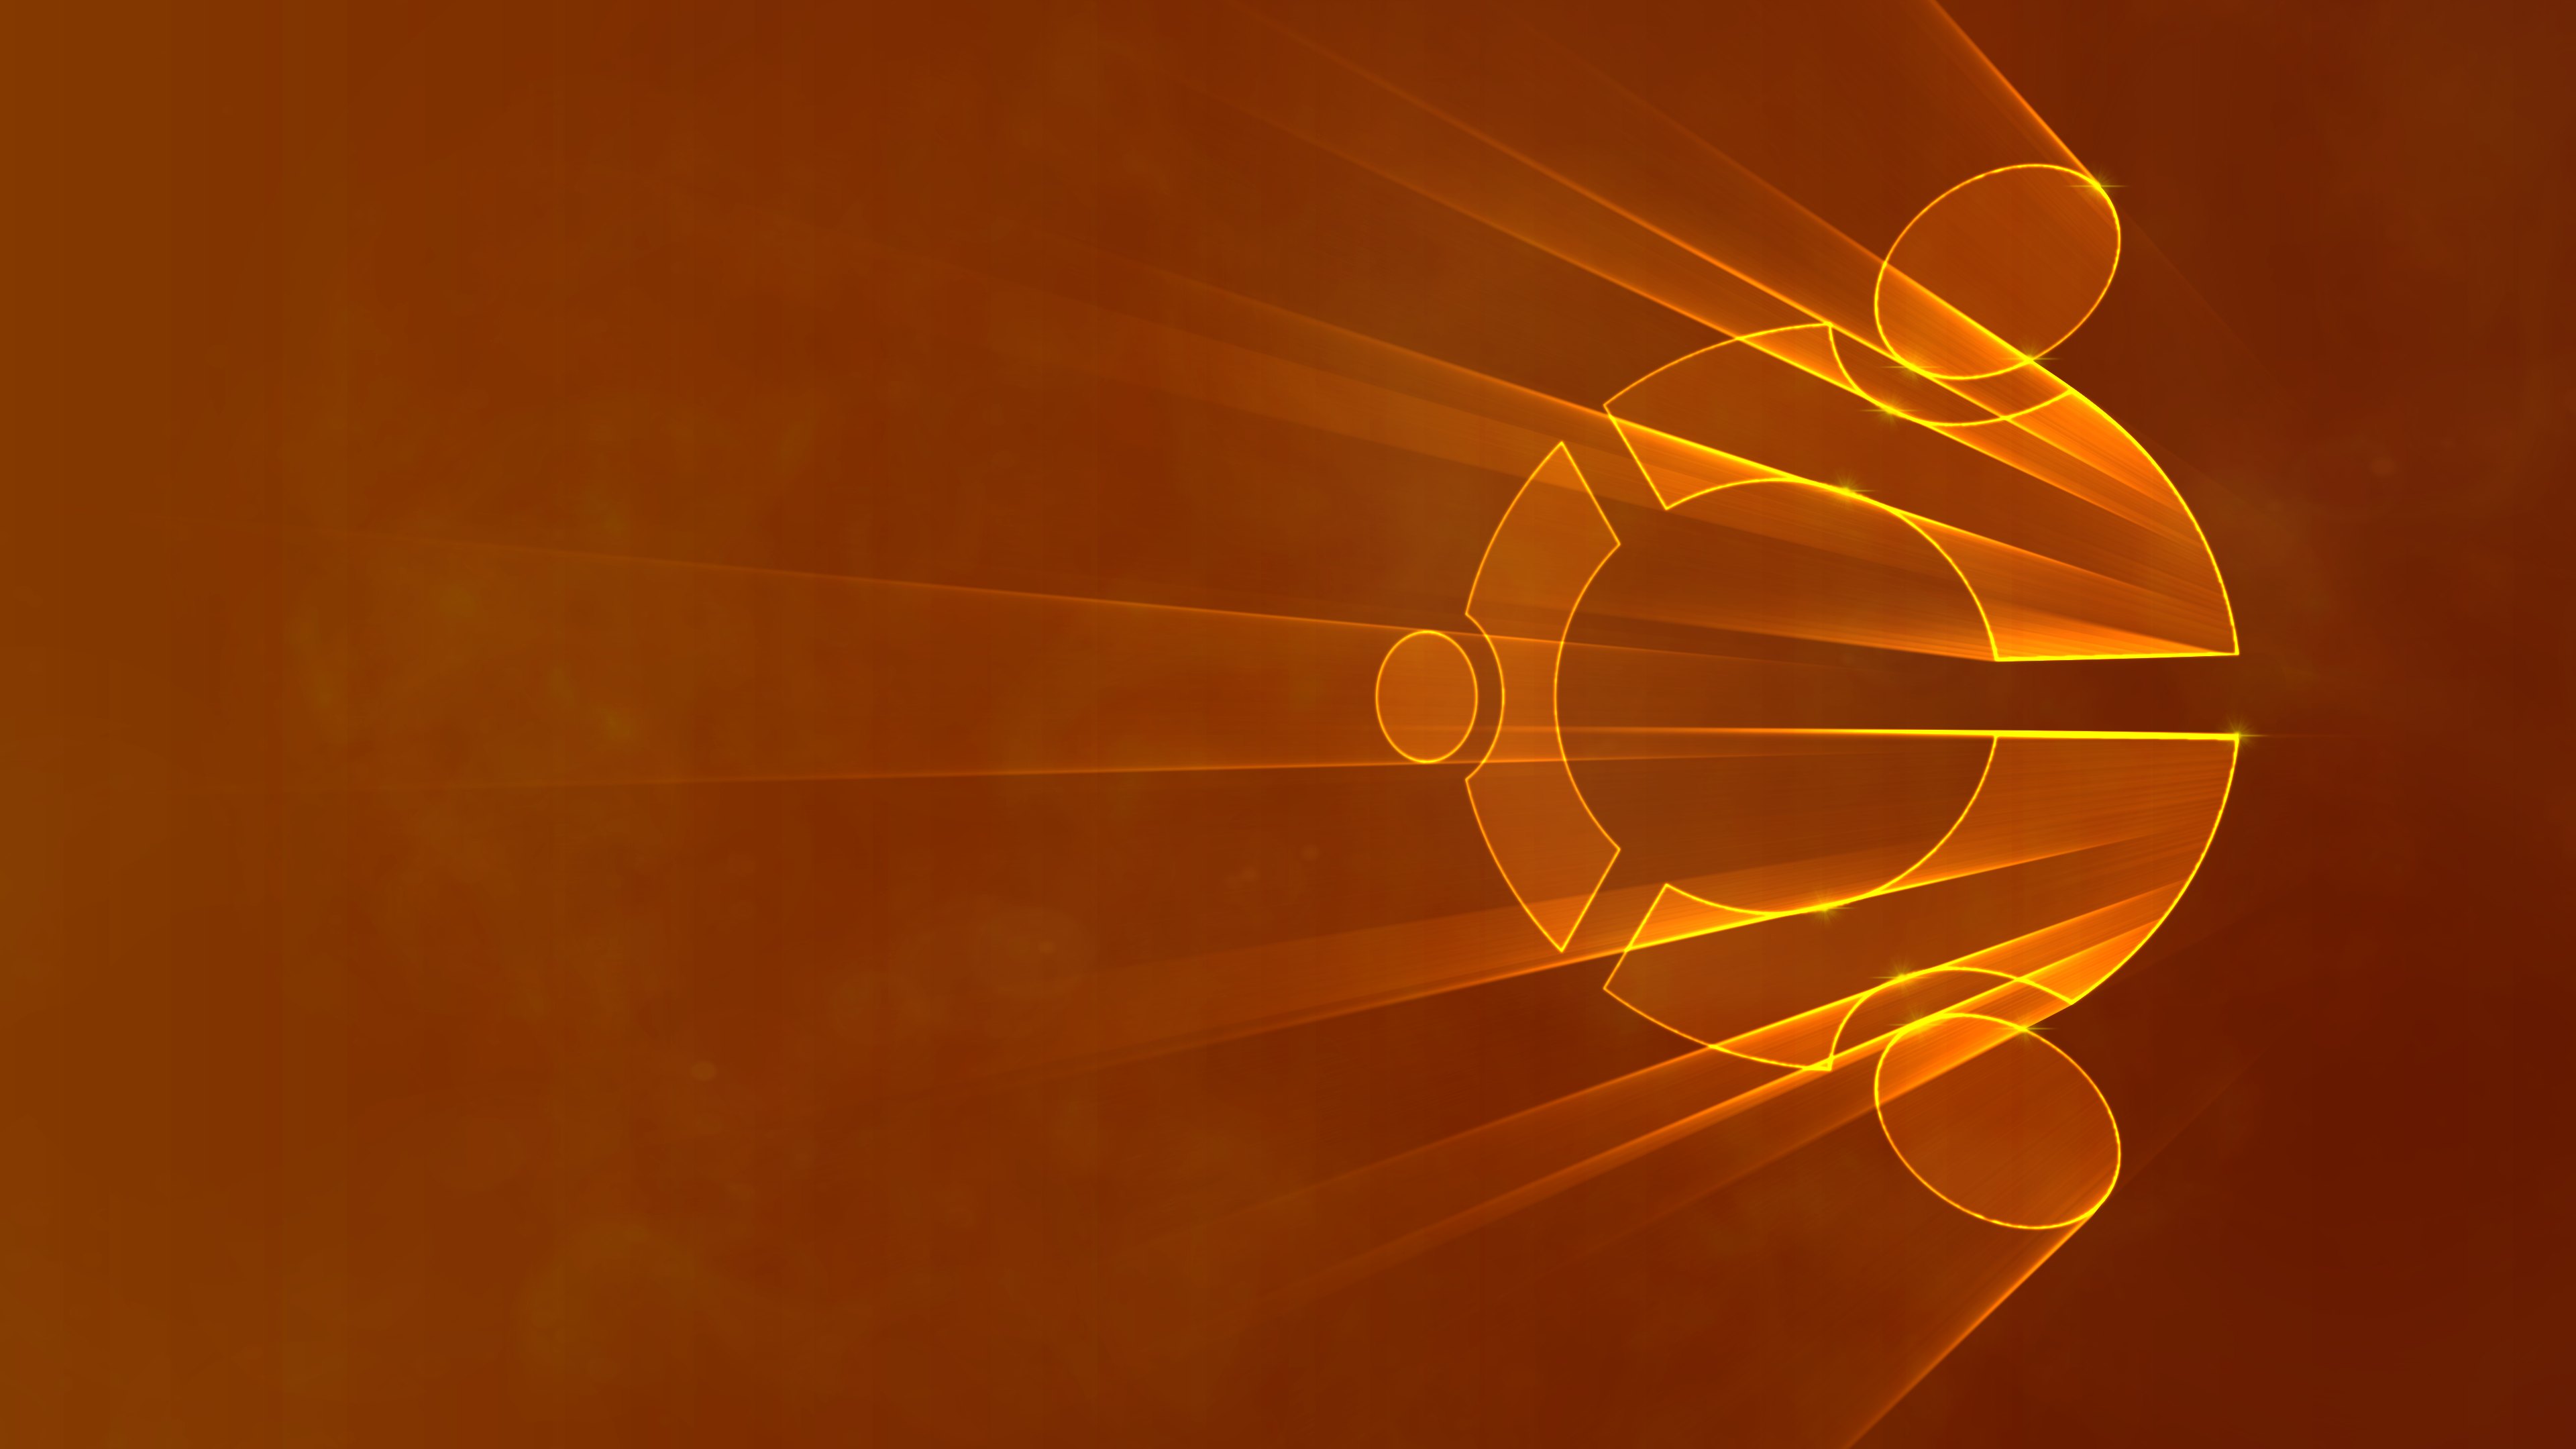 Ubuntu Wallpaper  Windows 10 Style 4K by GrumD on